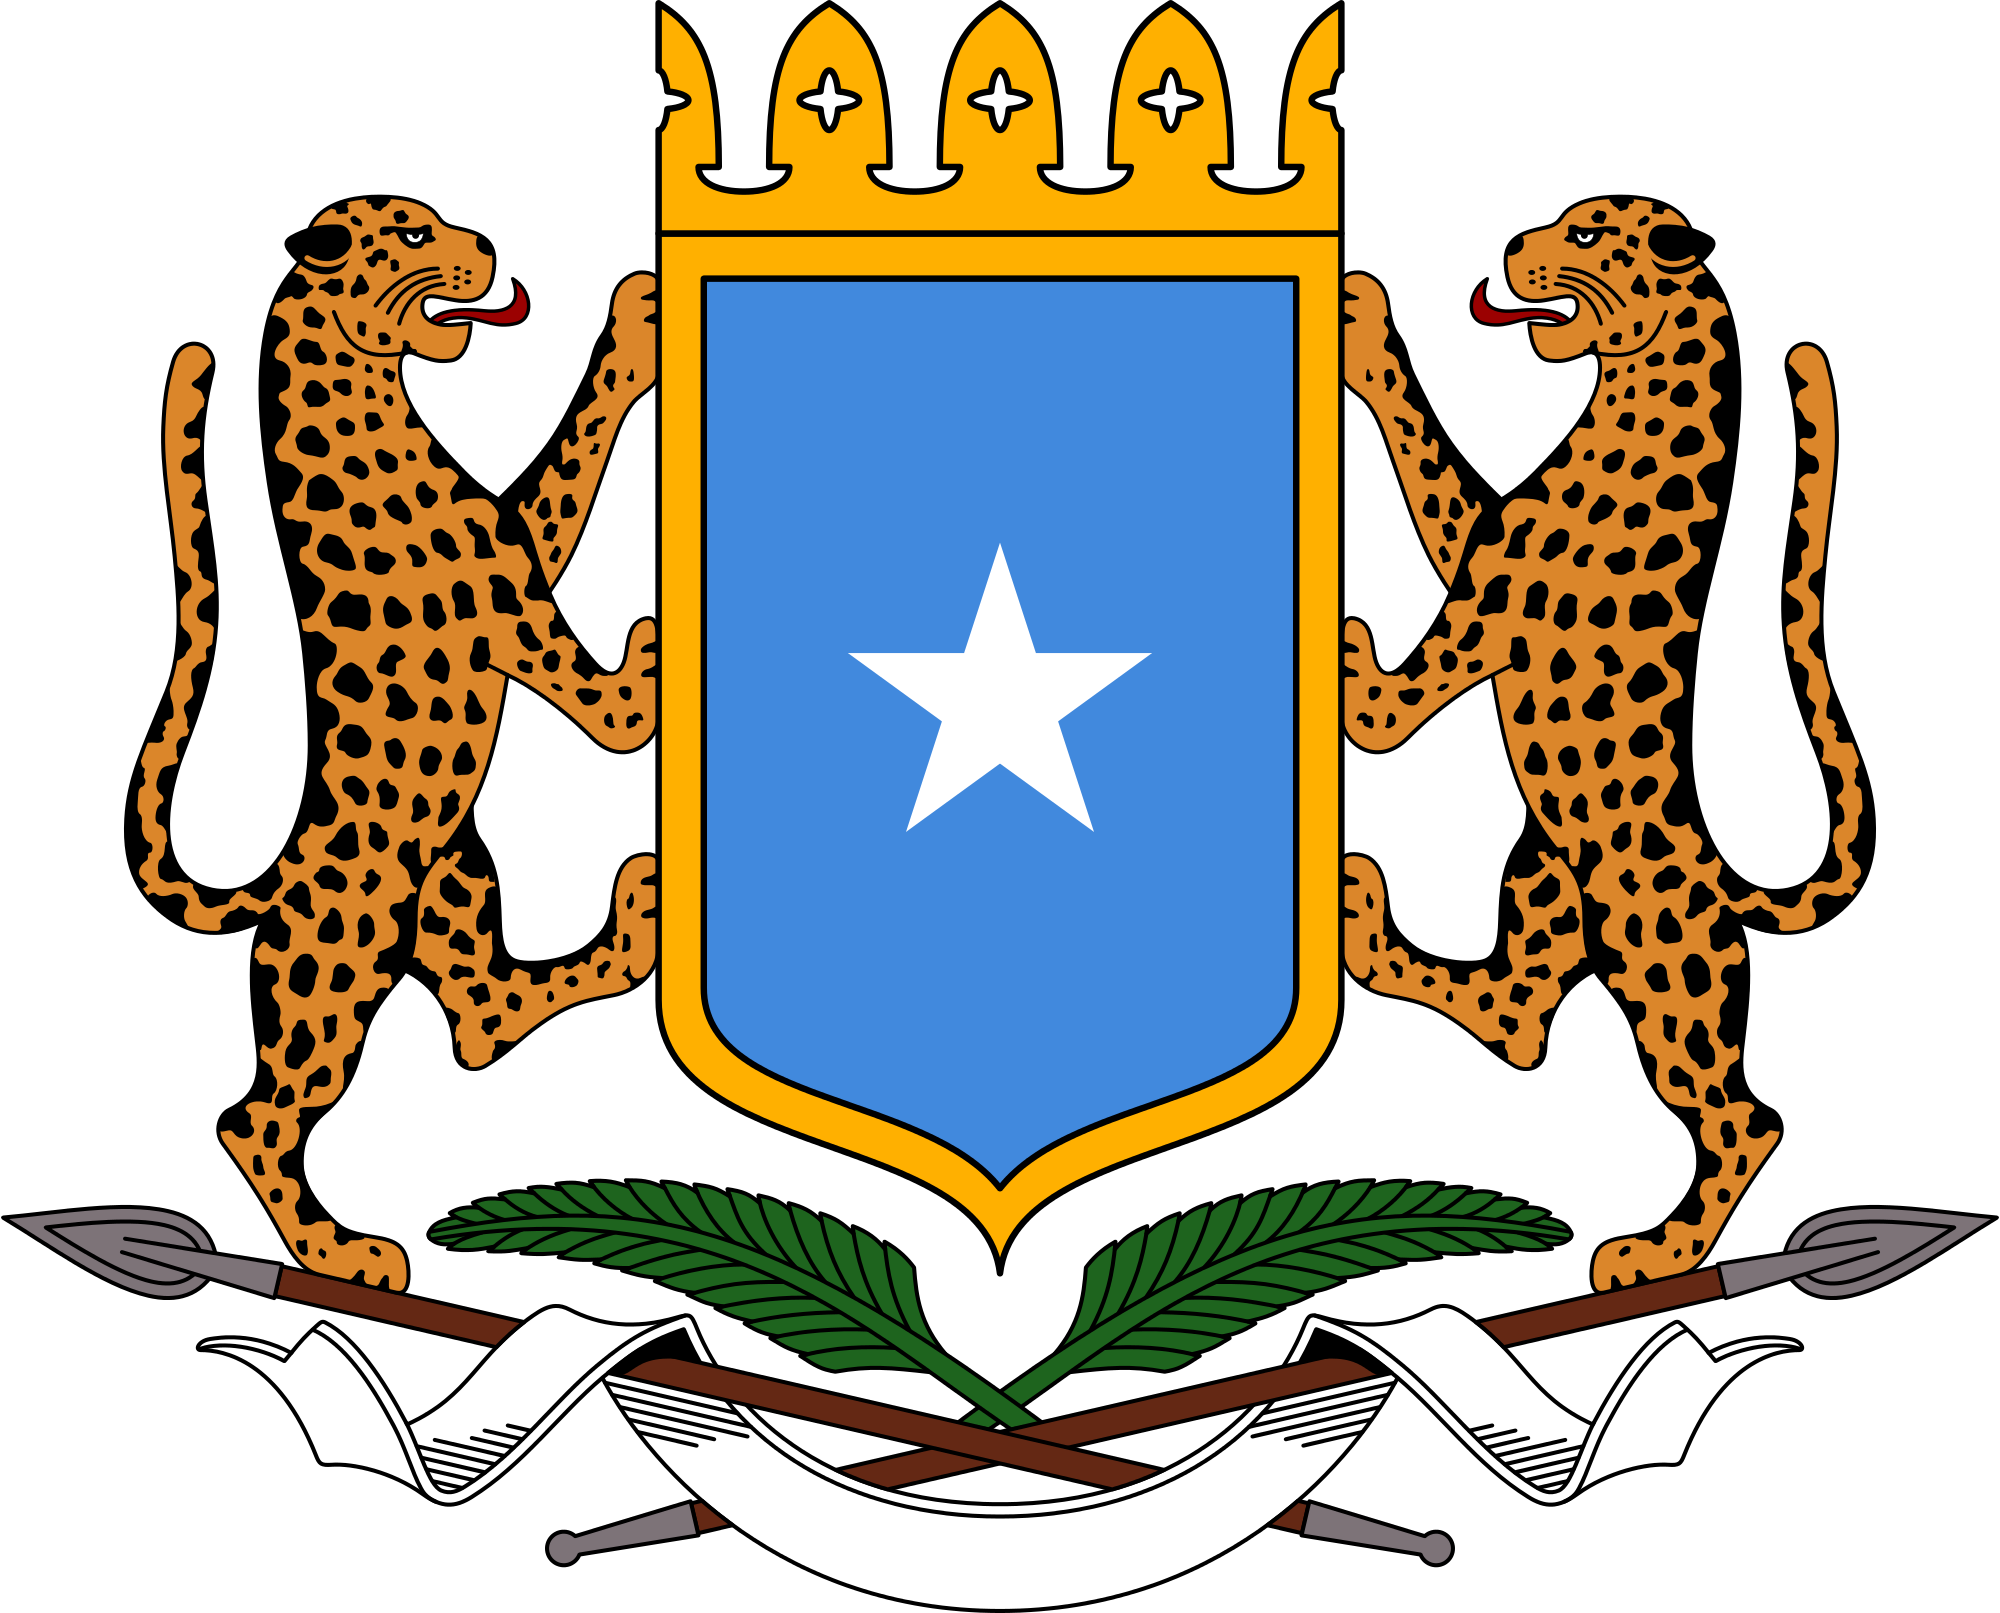 Somali Mps Submit An Impeachment Motion Against President Hassan Constitutionnet